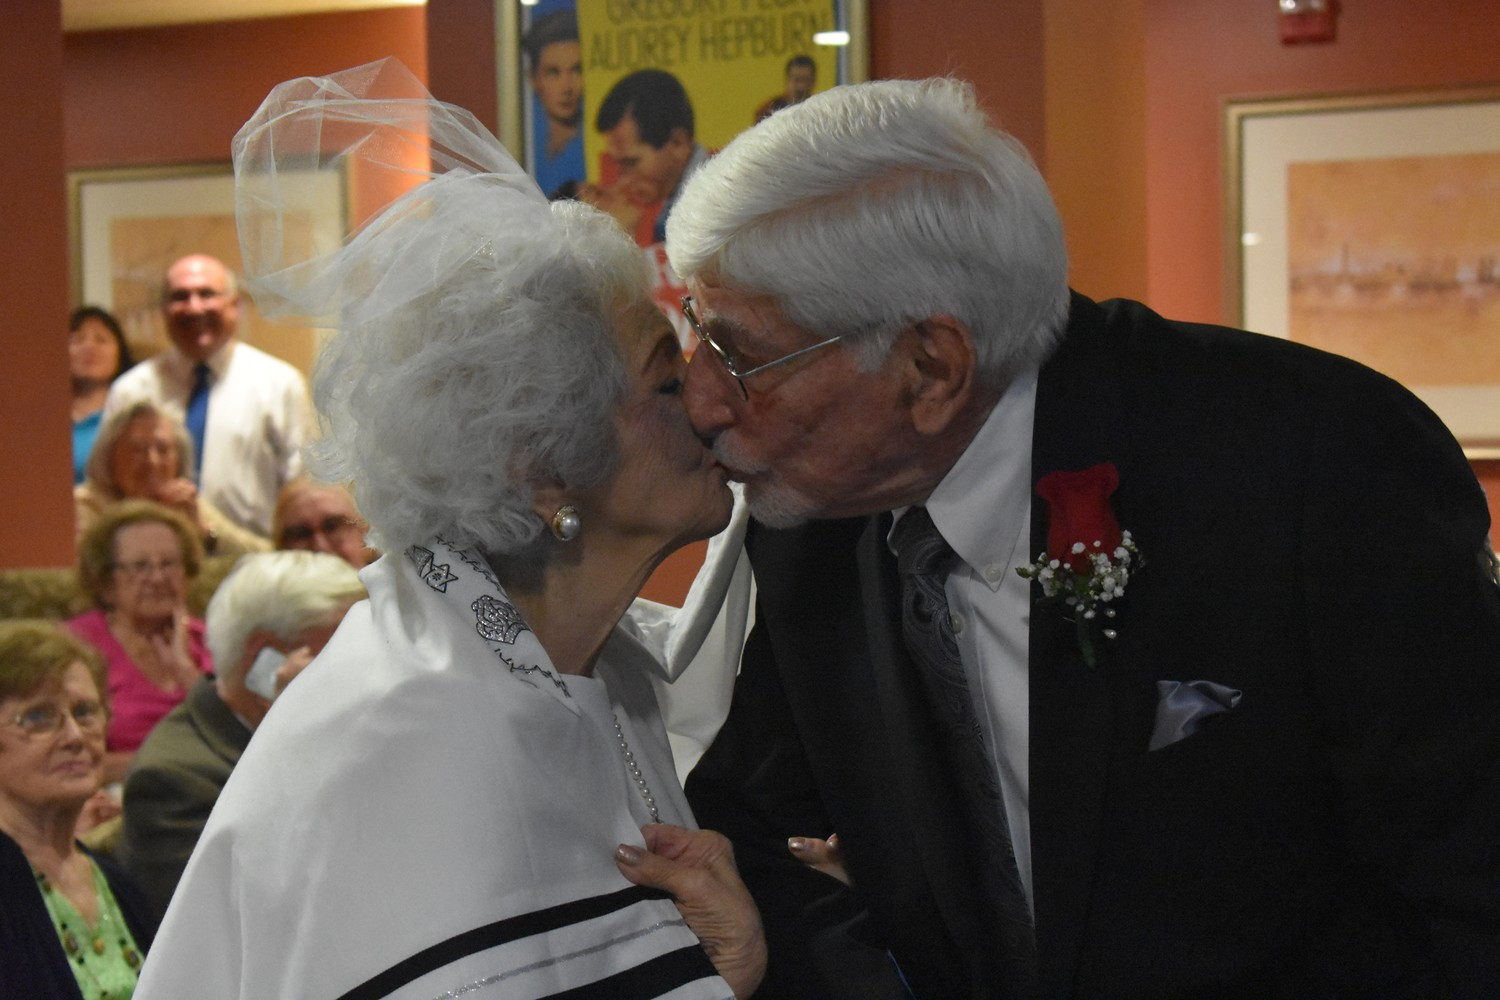 Patricia and Arthur shared an intimate moment in front of the dozens in attendance.